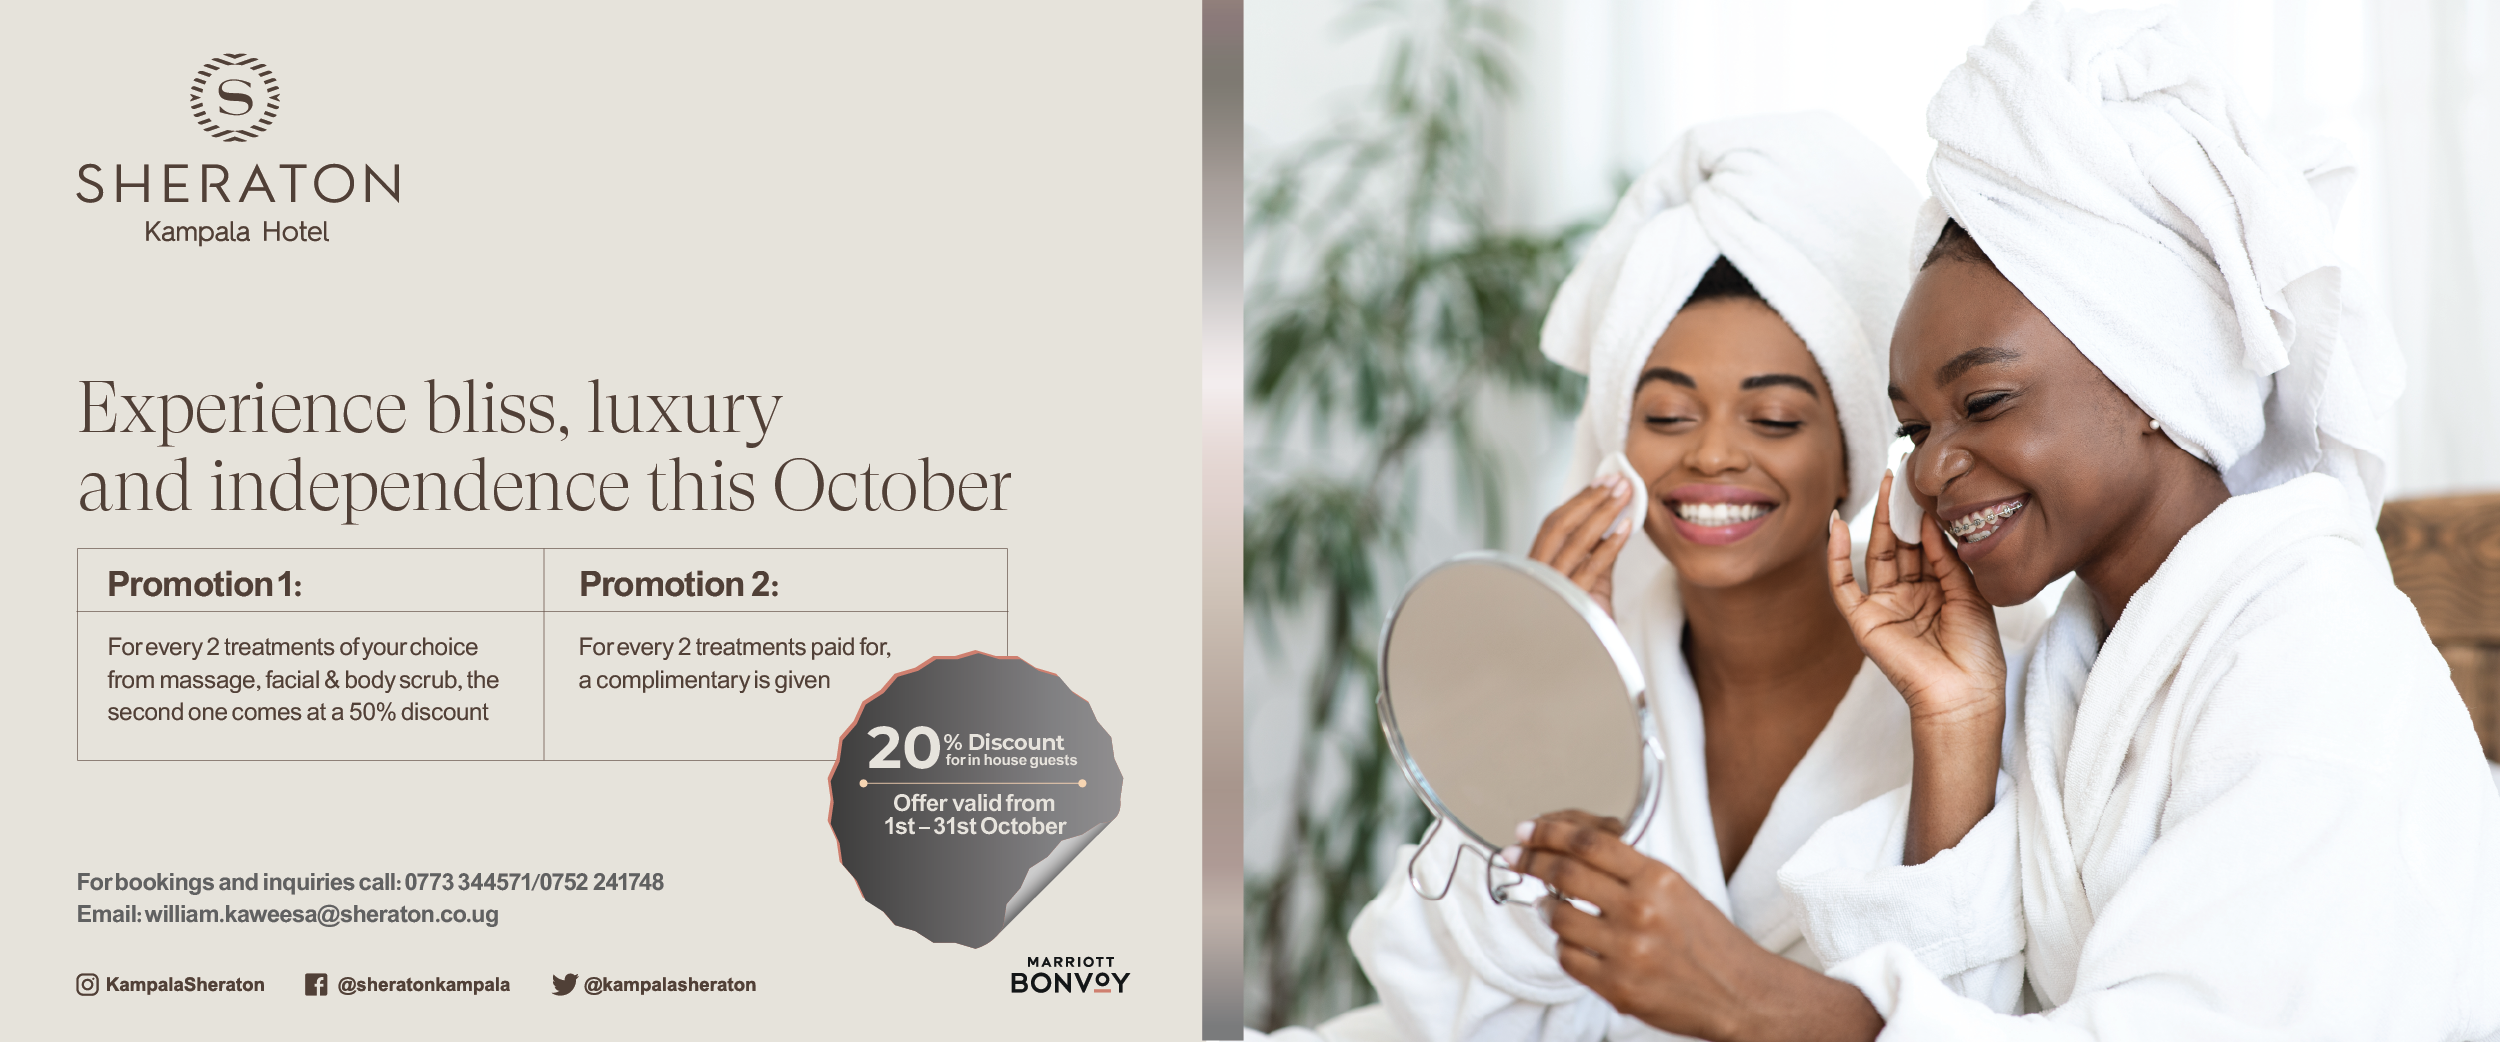 Stay healthy - with the help of the Sheraton Kampala Hotel